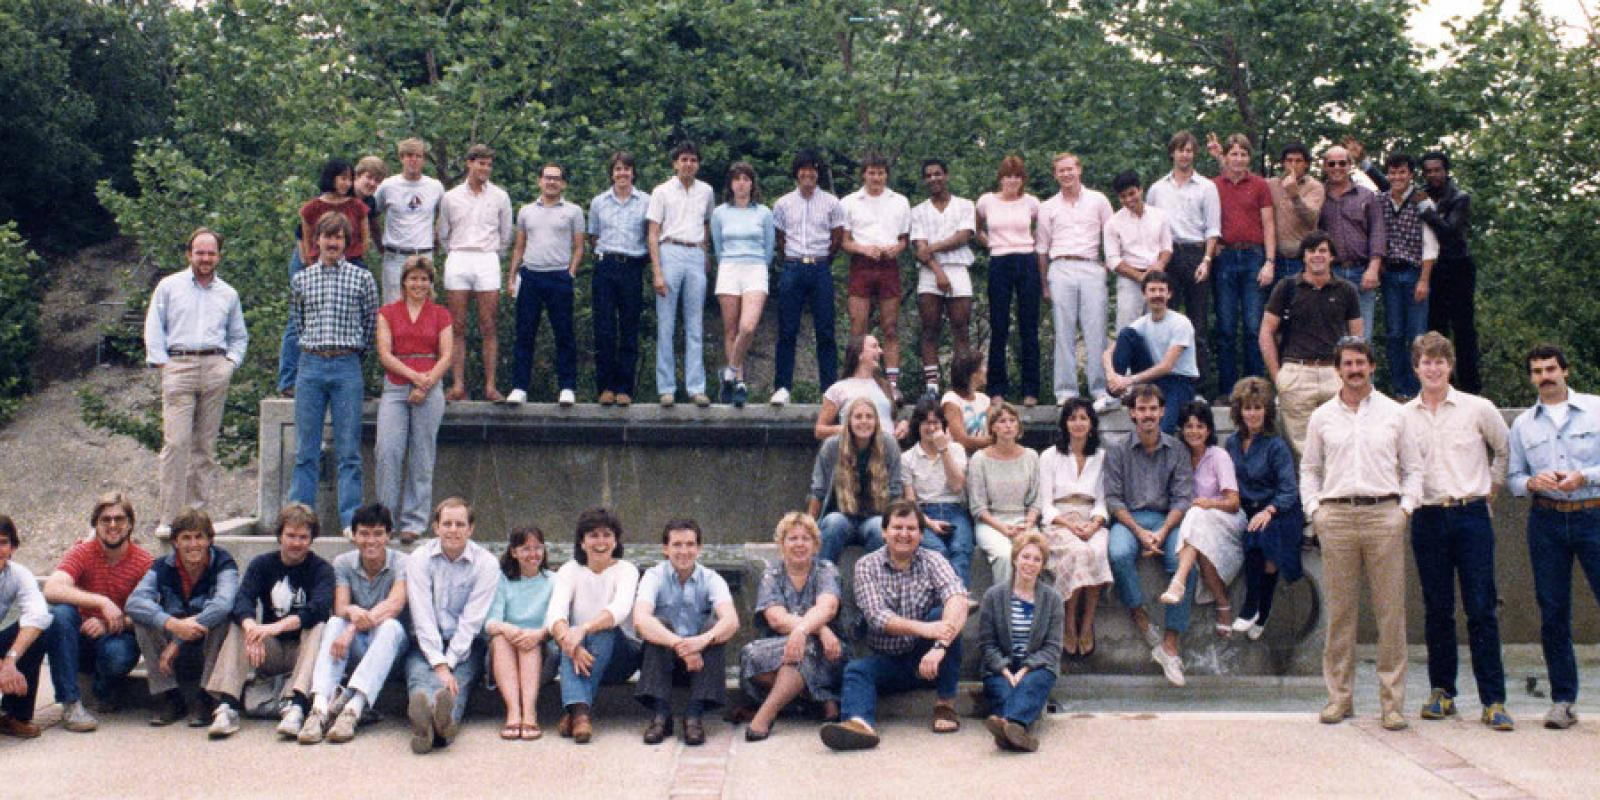 The Class of 1984